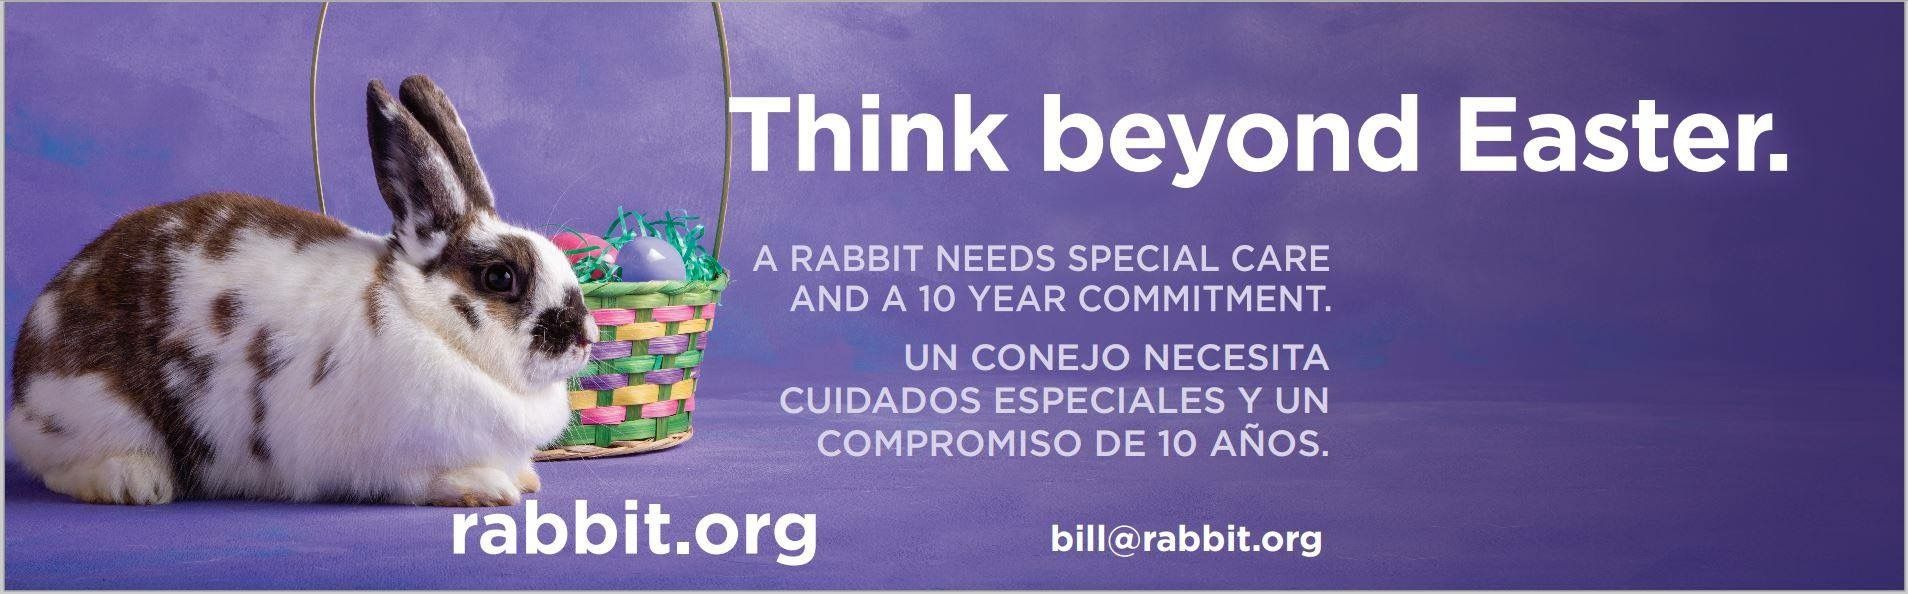 Rabbitron Easter campaign (with partial Spanish